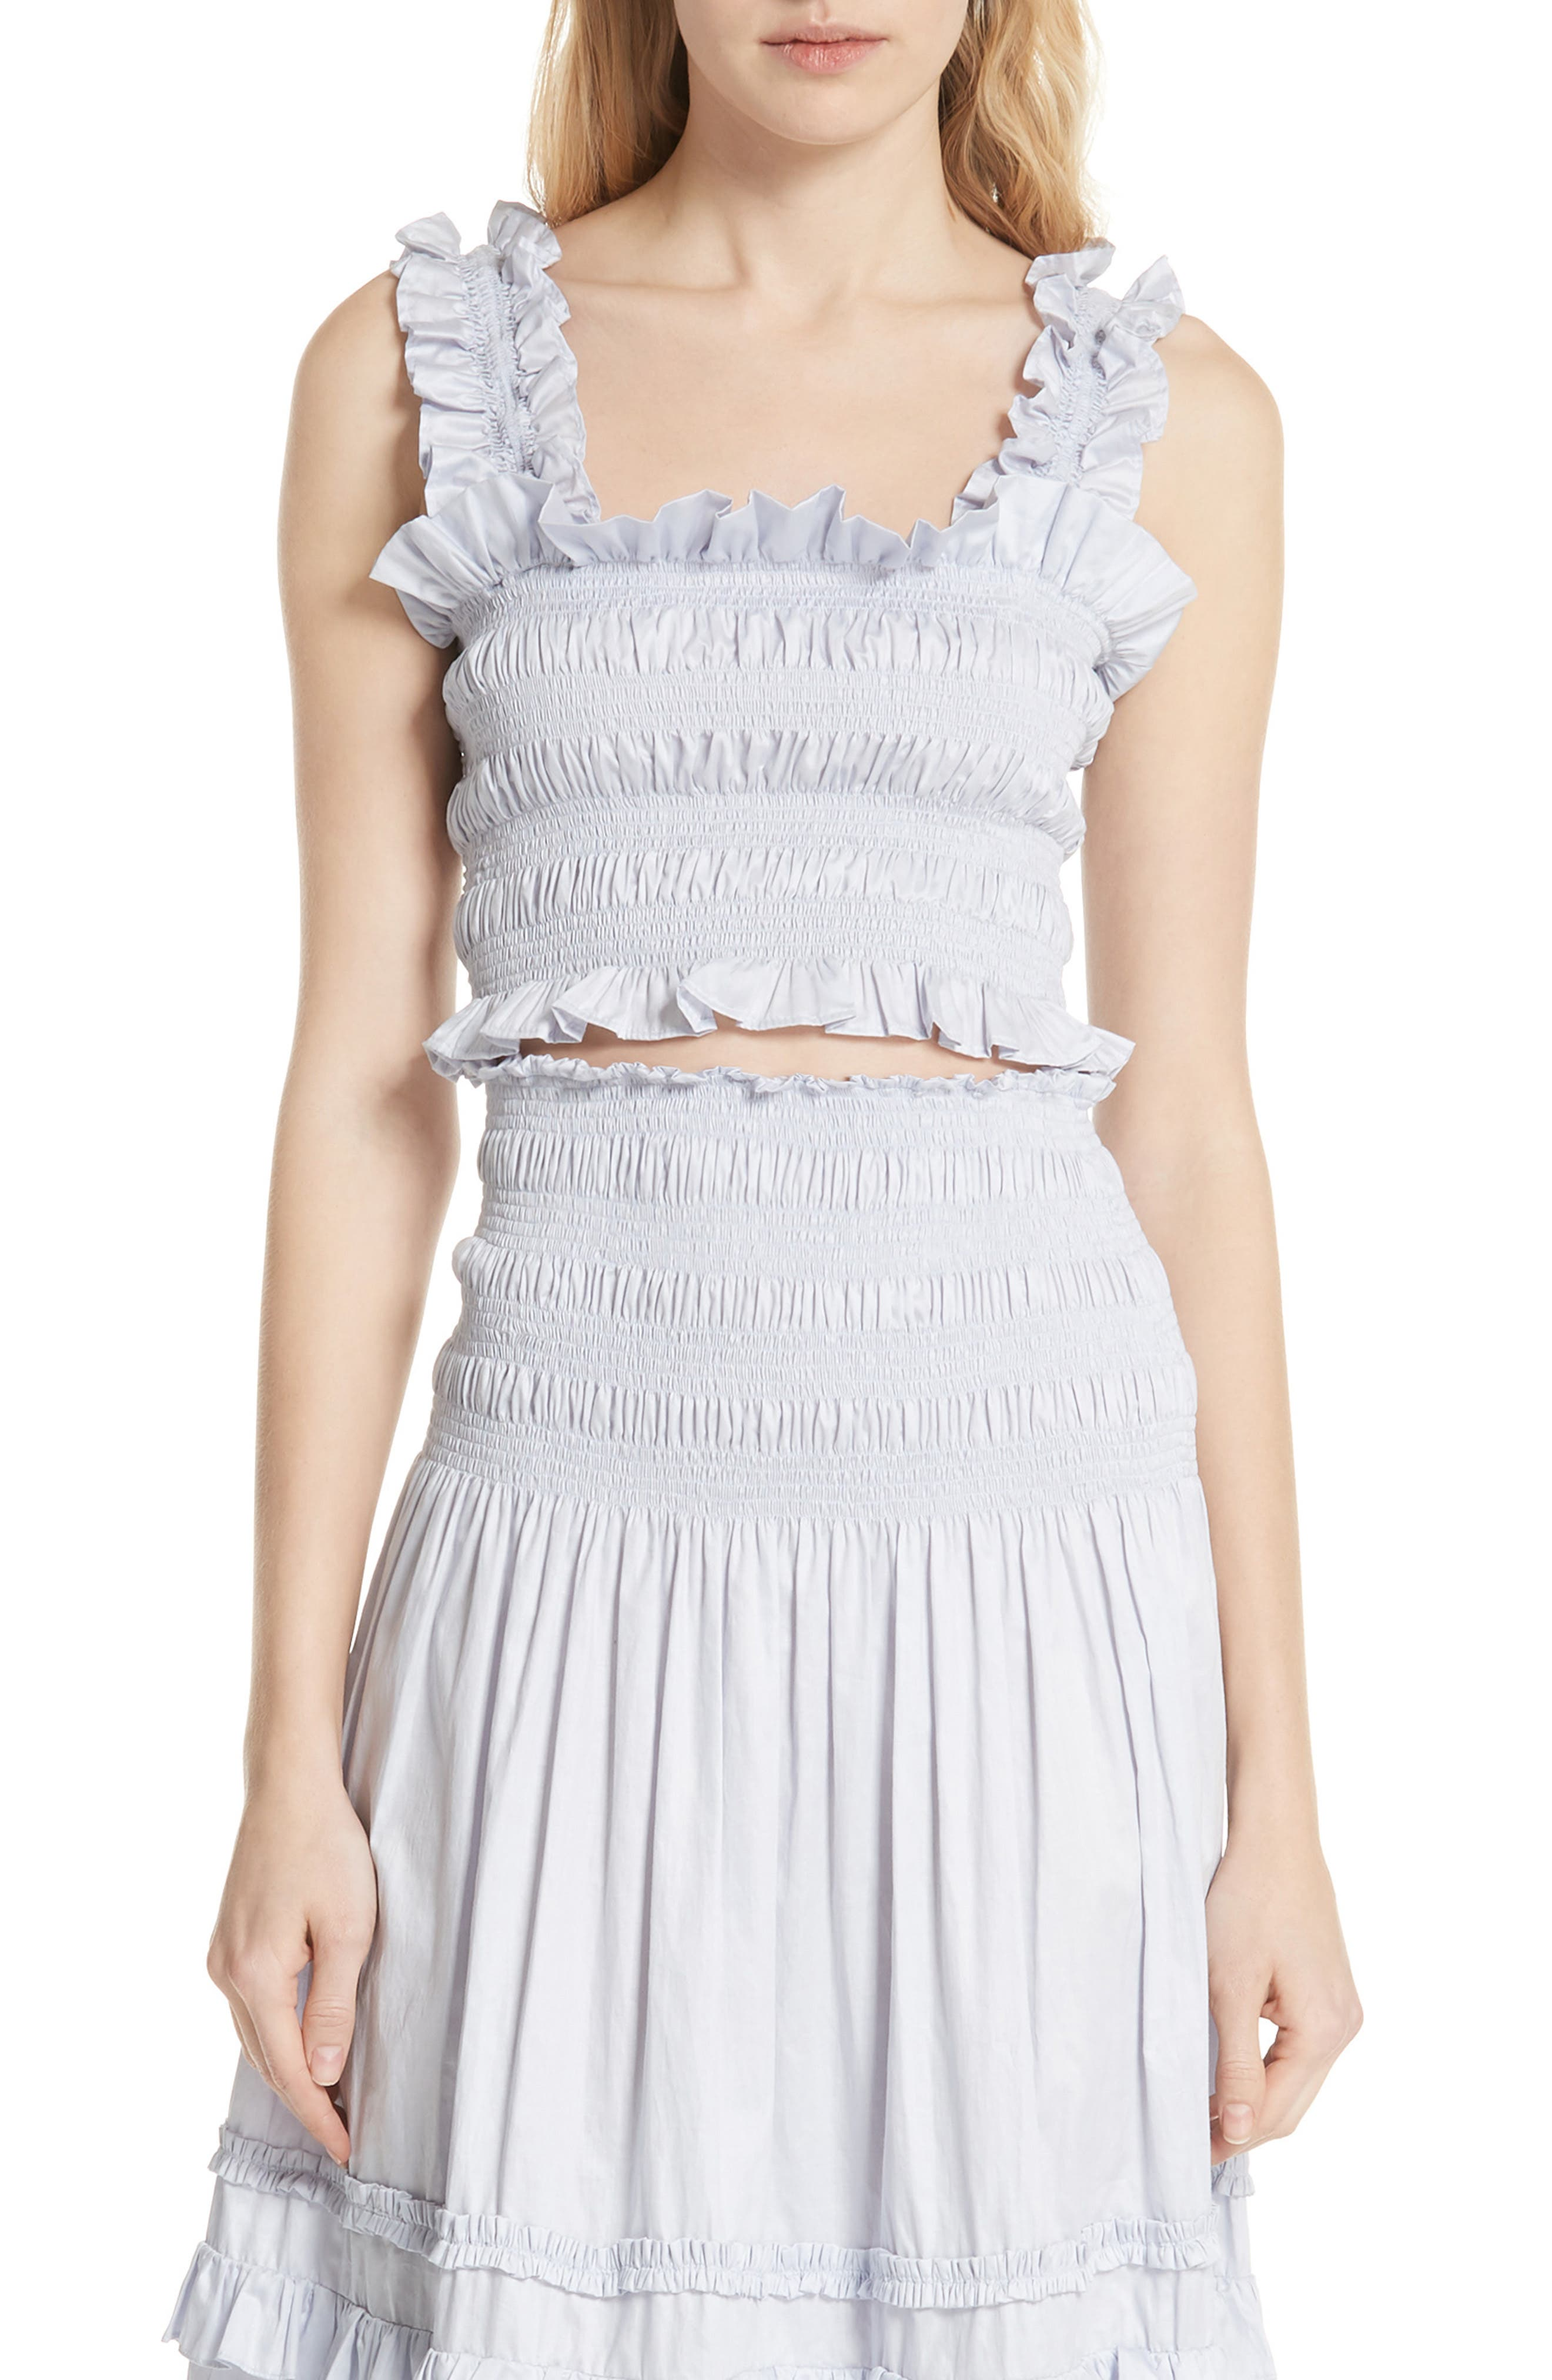 Alternate Image 1 Selected - Rebecca Taylor Smocked Sleeveless Cotton Top